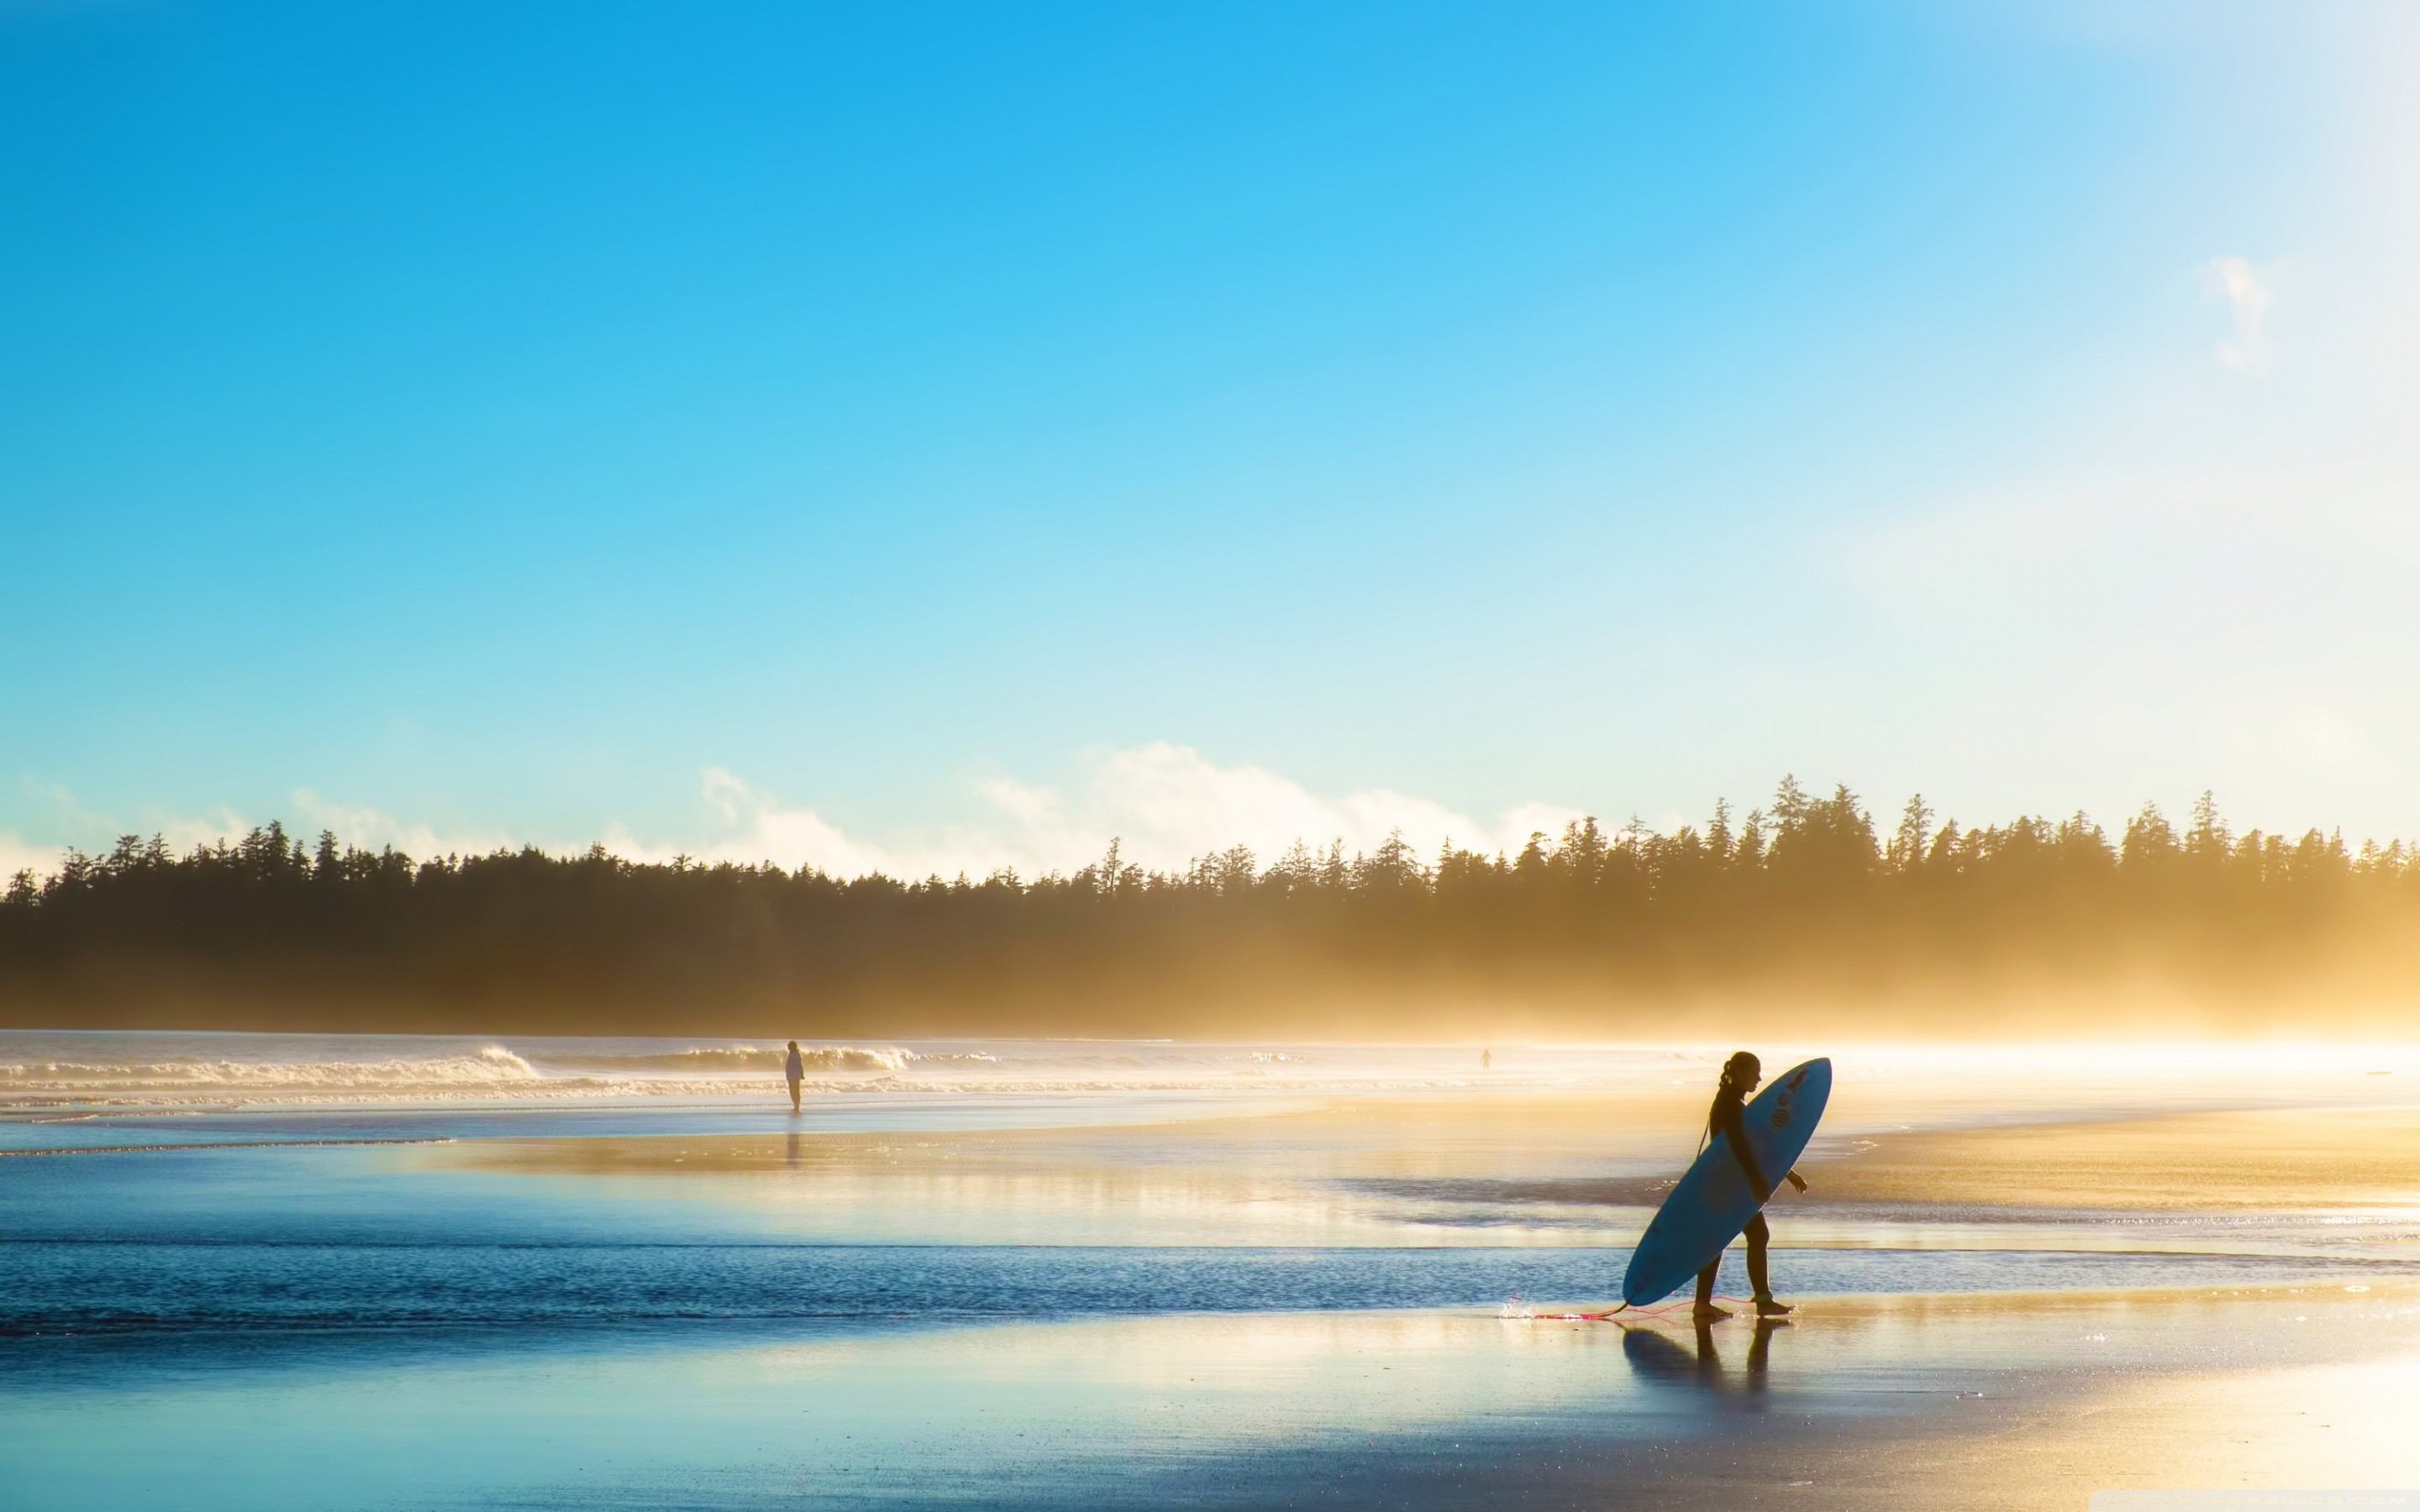 82 Hd Surf Wallpapers on WallpaperPlay 2880x1800